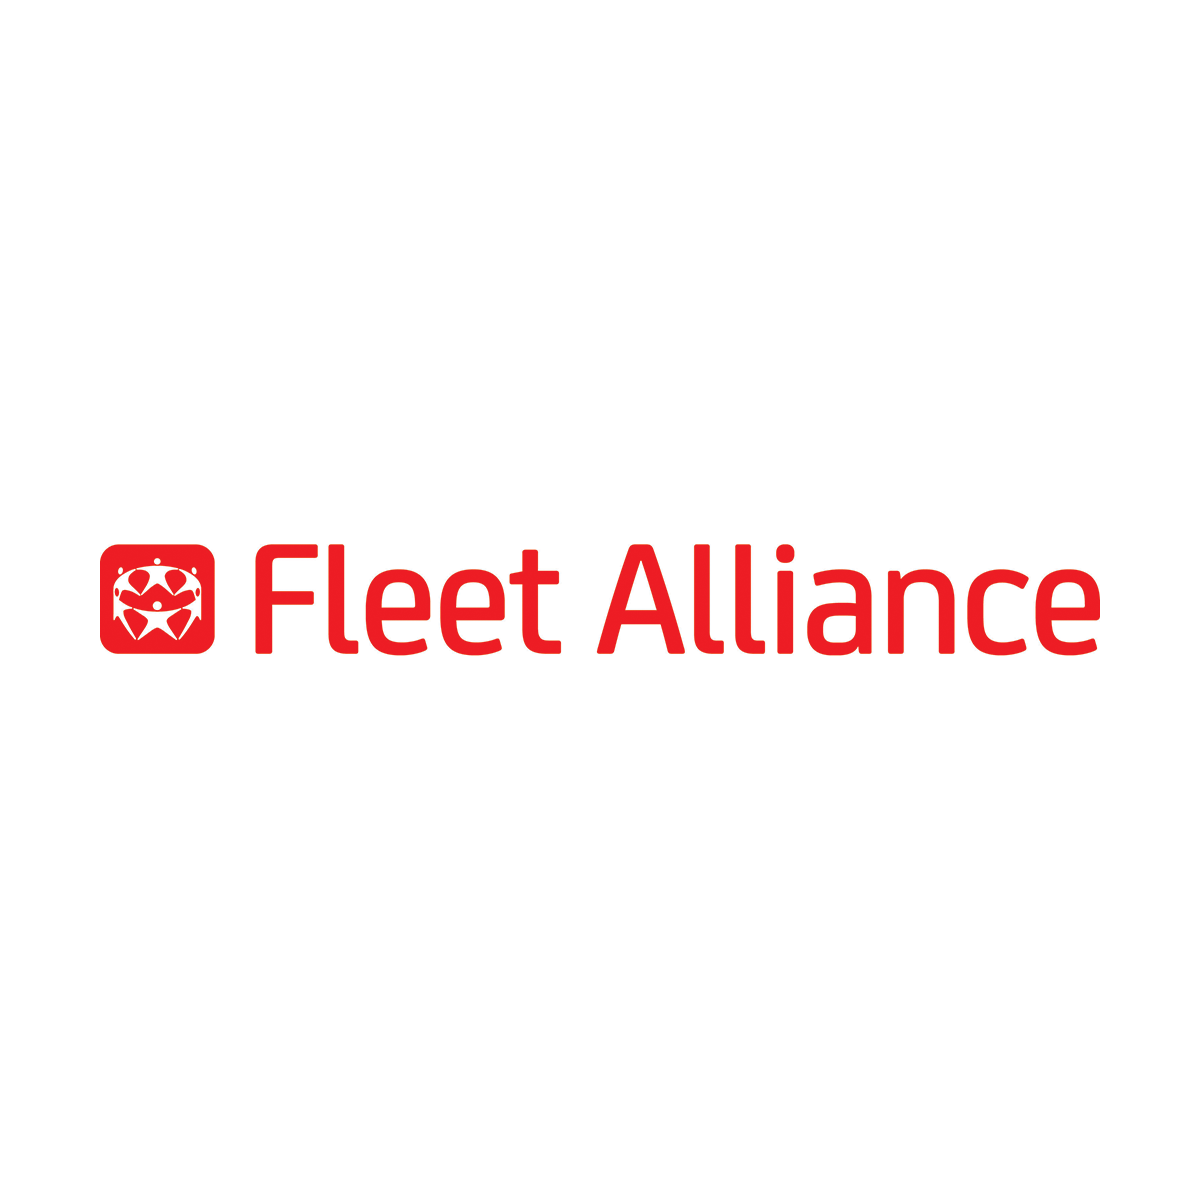 Fleet Alliance - Glasgow, Lanarkshire G3 8EP - 03456 018407 | ShowMeLocal.com